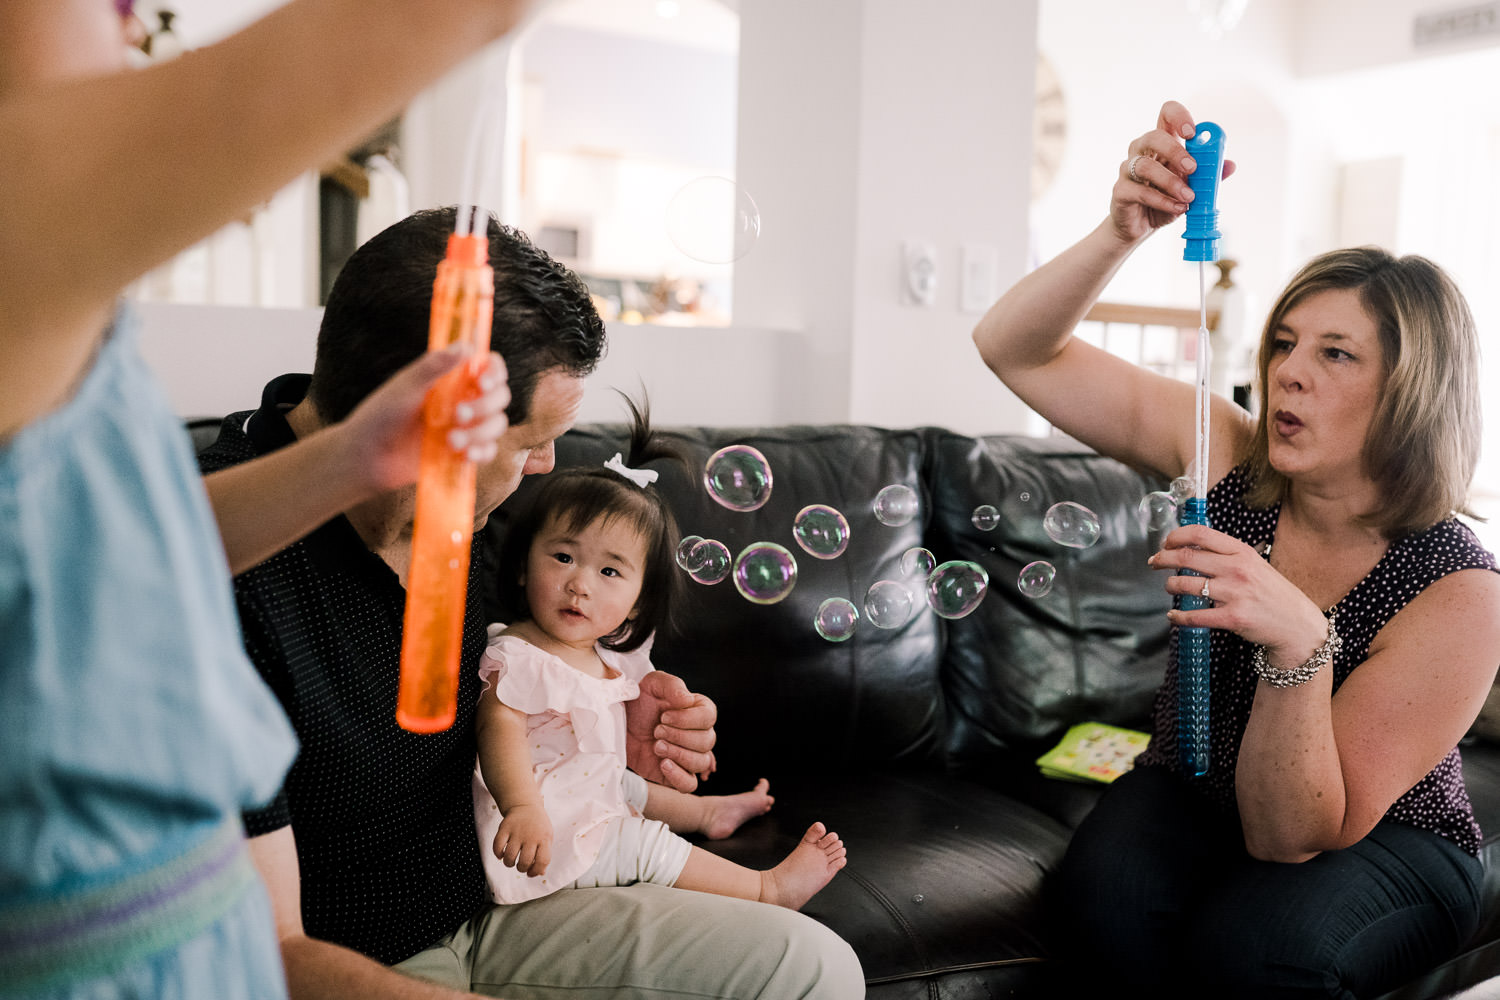 A family blows bubbles together.